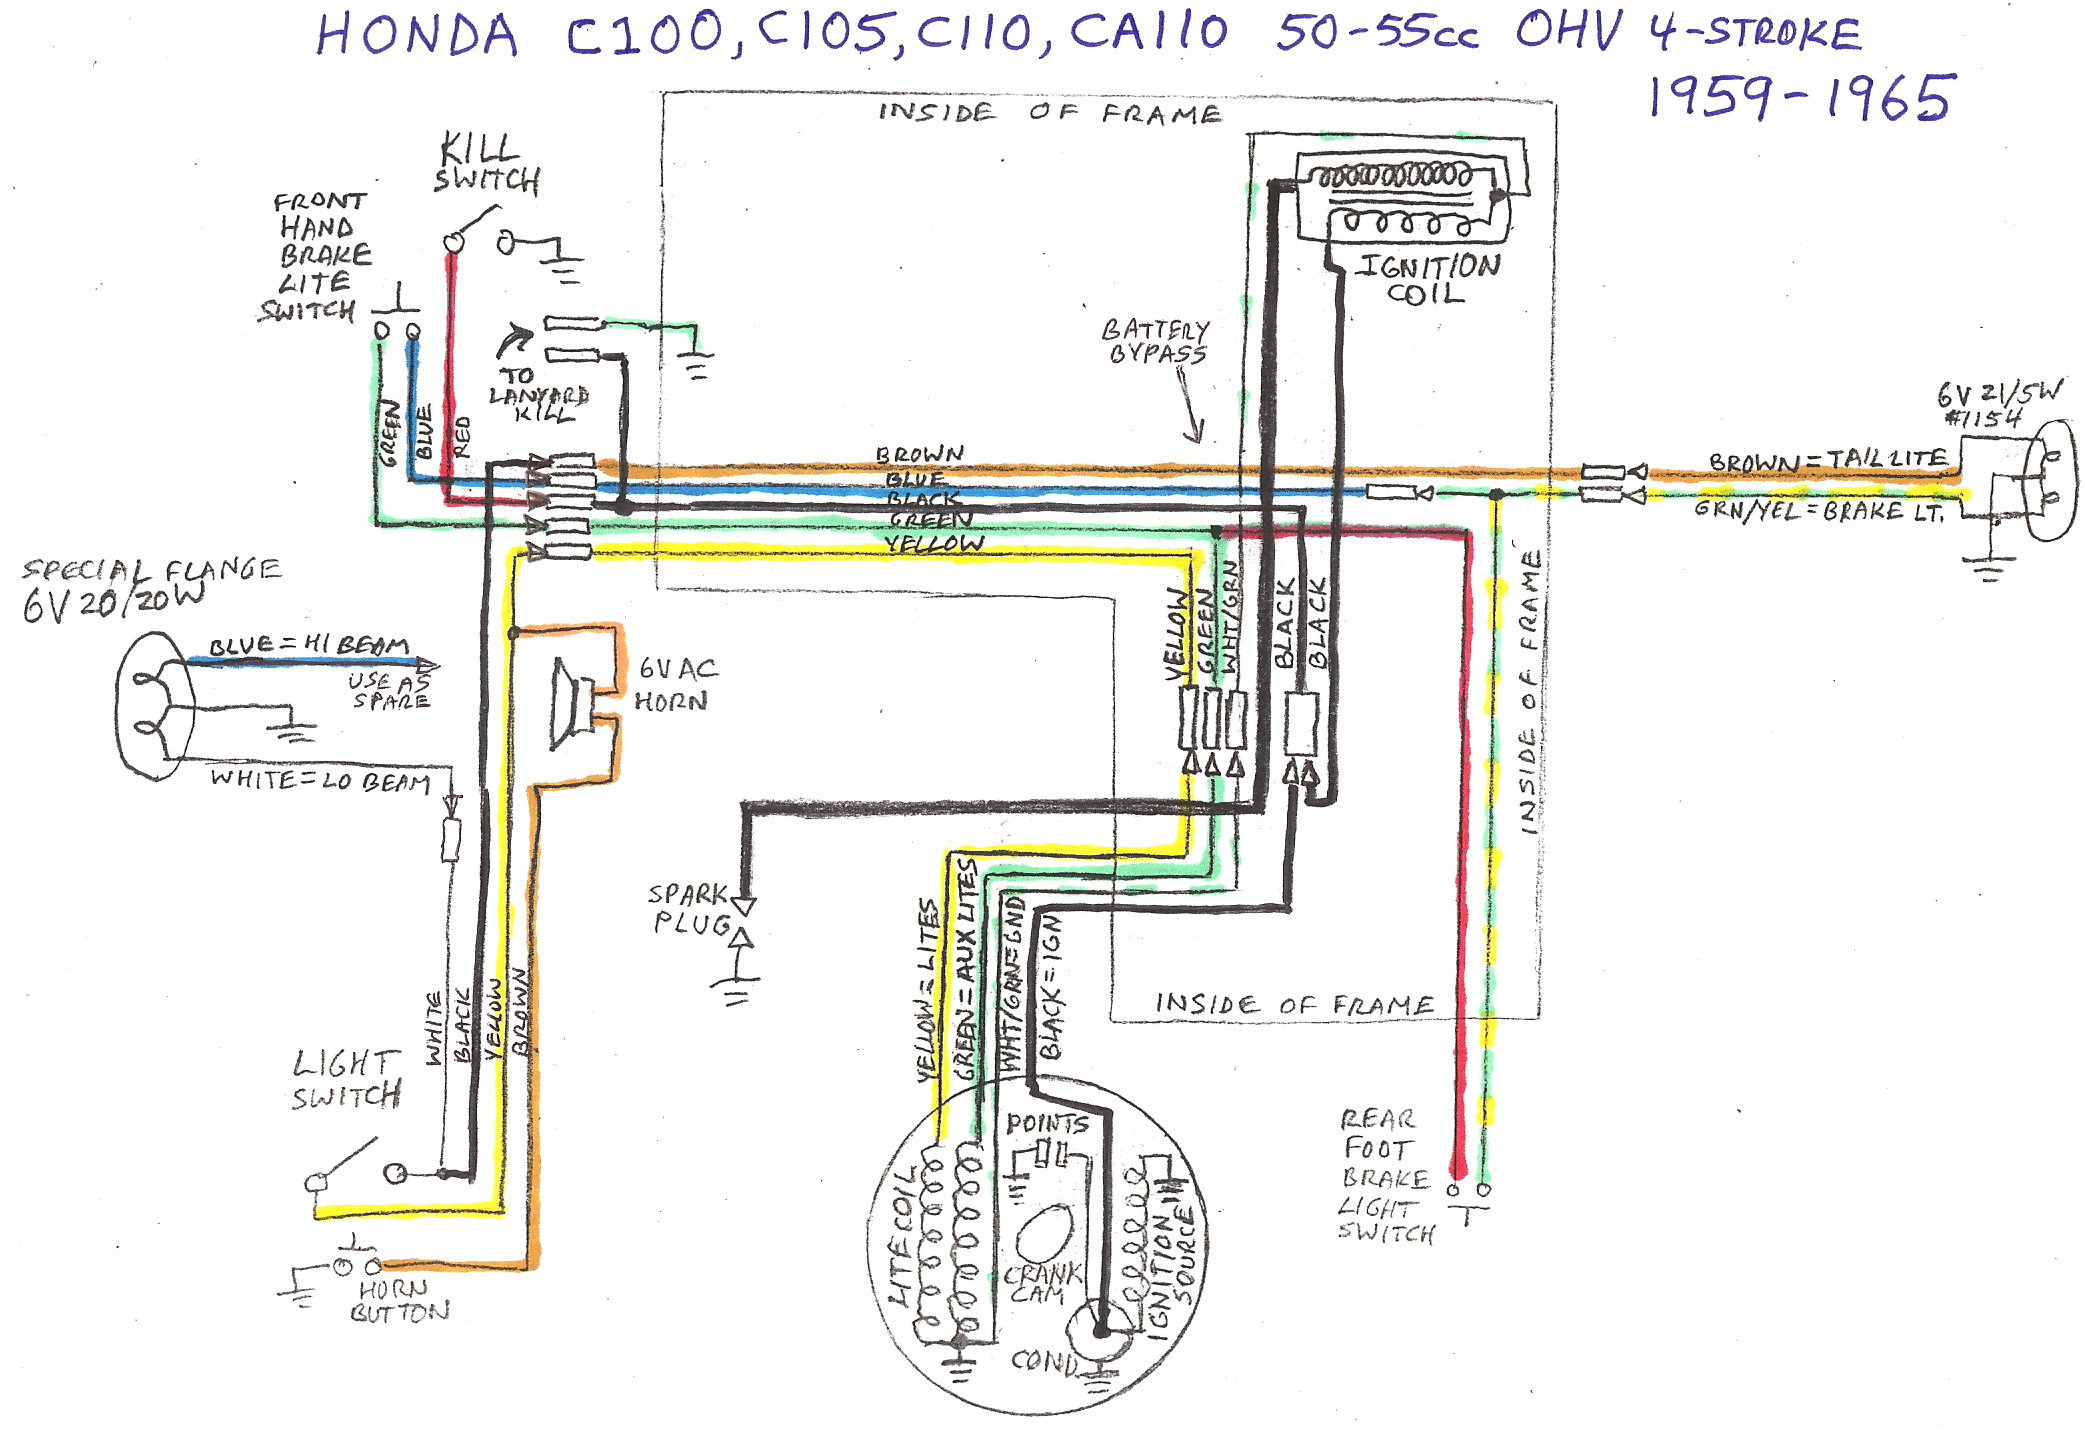 Gm Ignition Module Wiring Diagram 2001 Custom Project Images Gallery C100 Get Free Image About